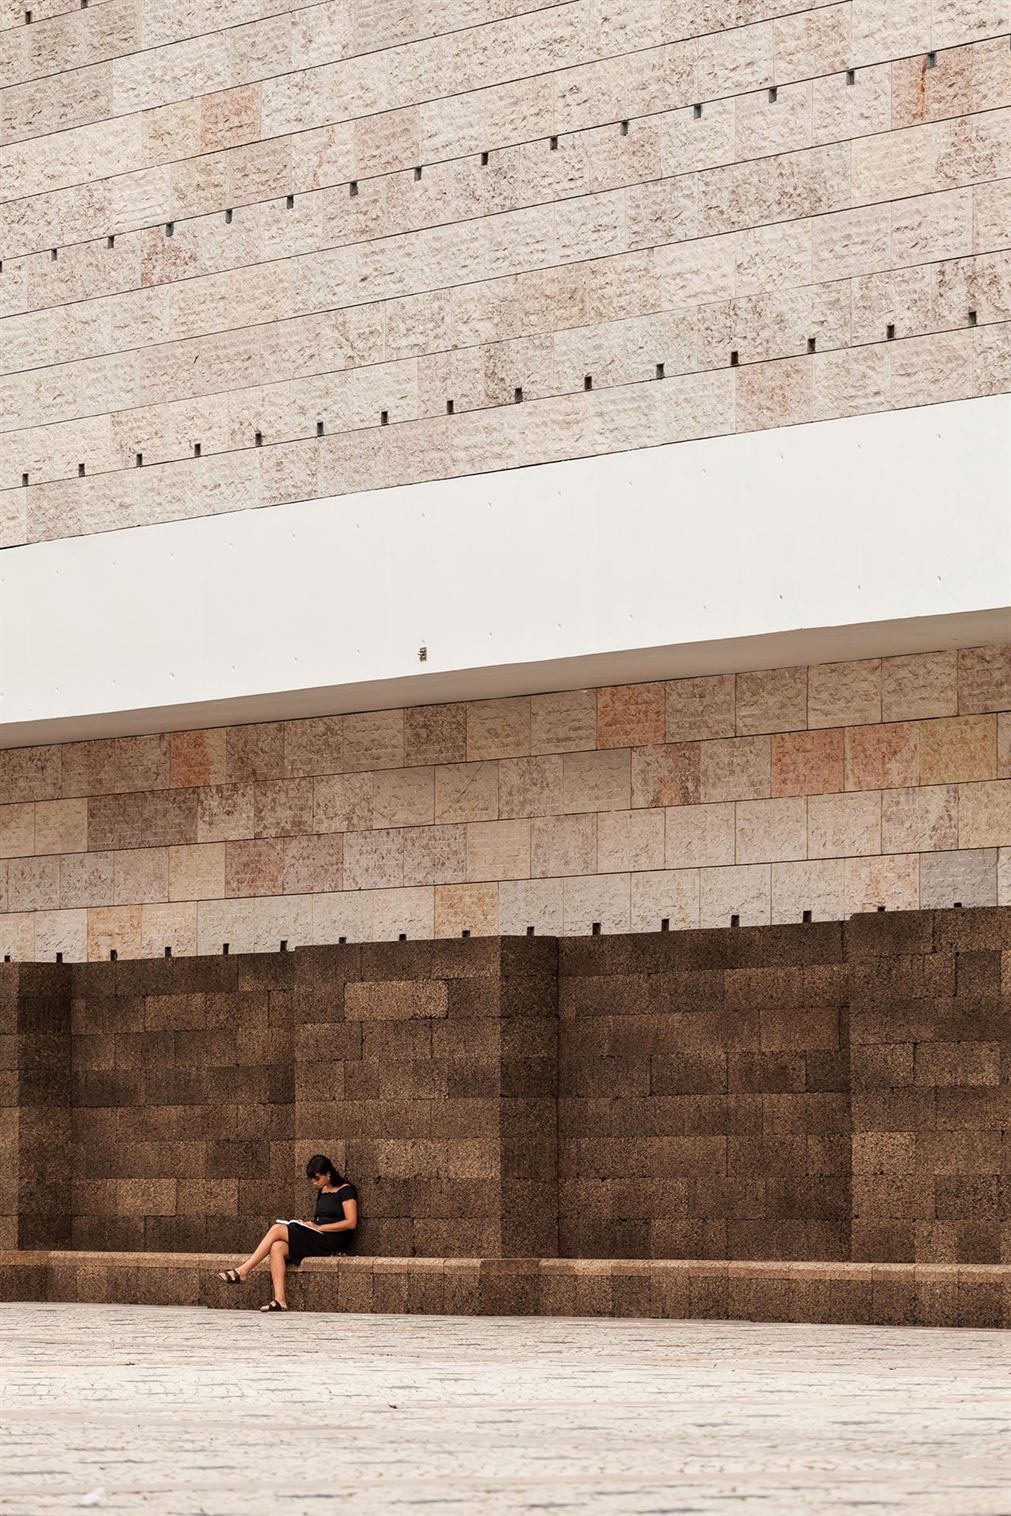 s1_jose_neves_a_square_in_summer_belem_cultural_center_lisbon_yatzer